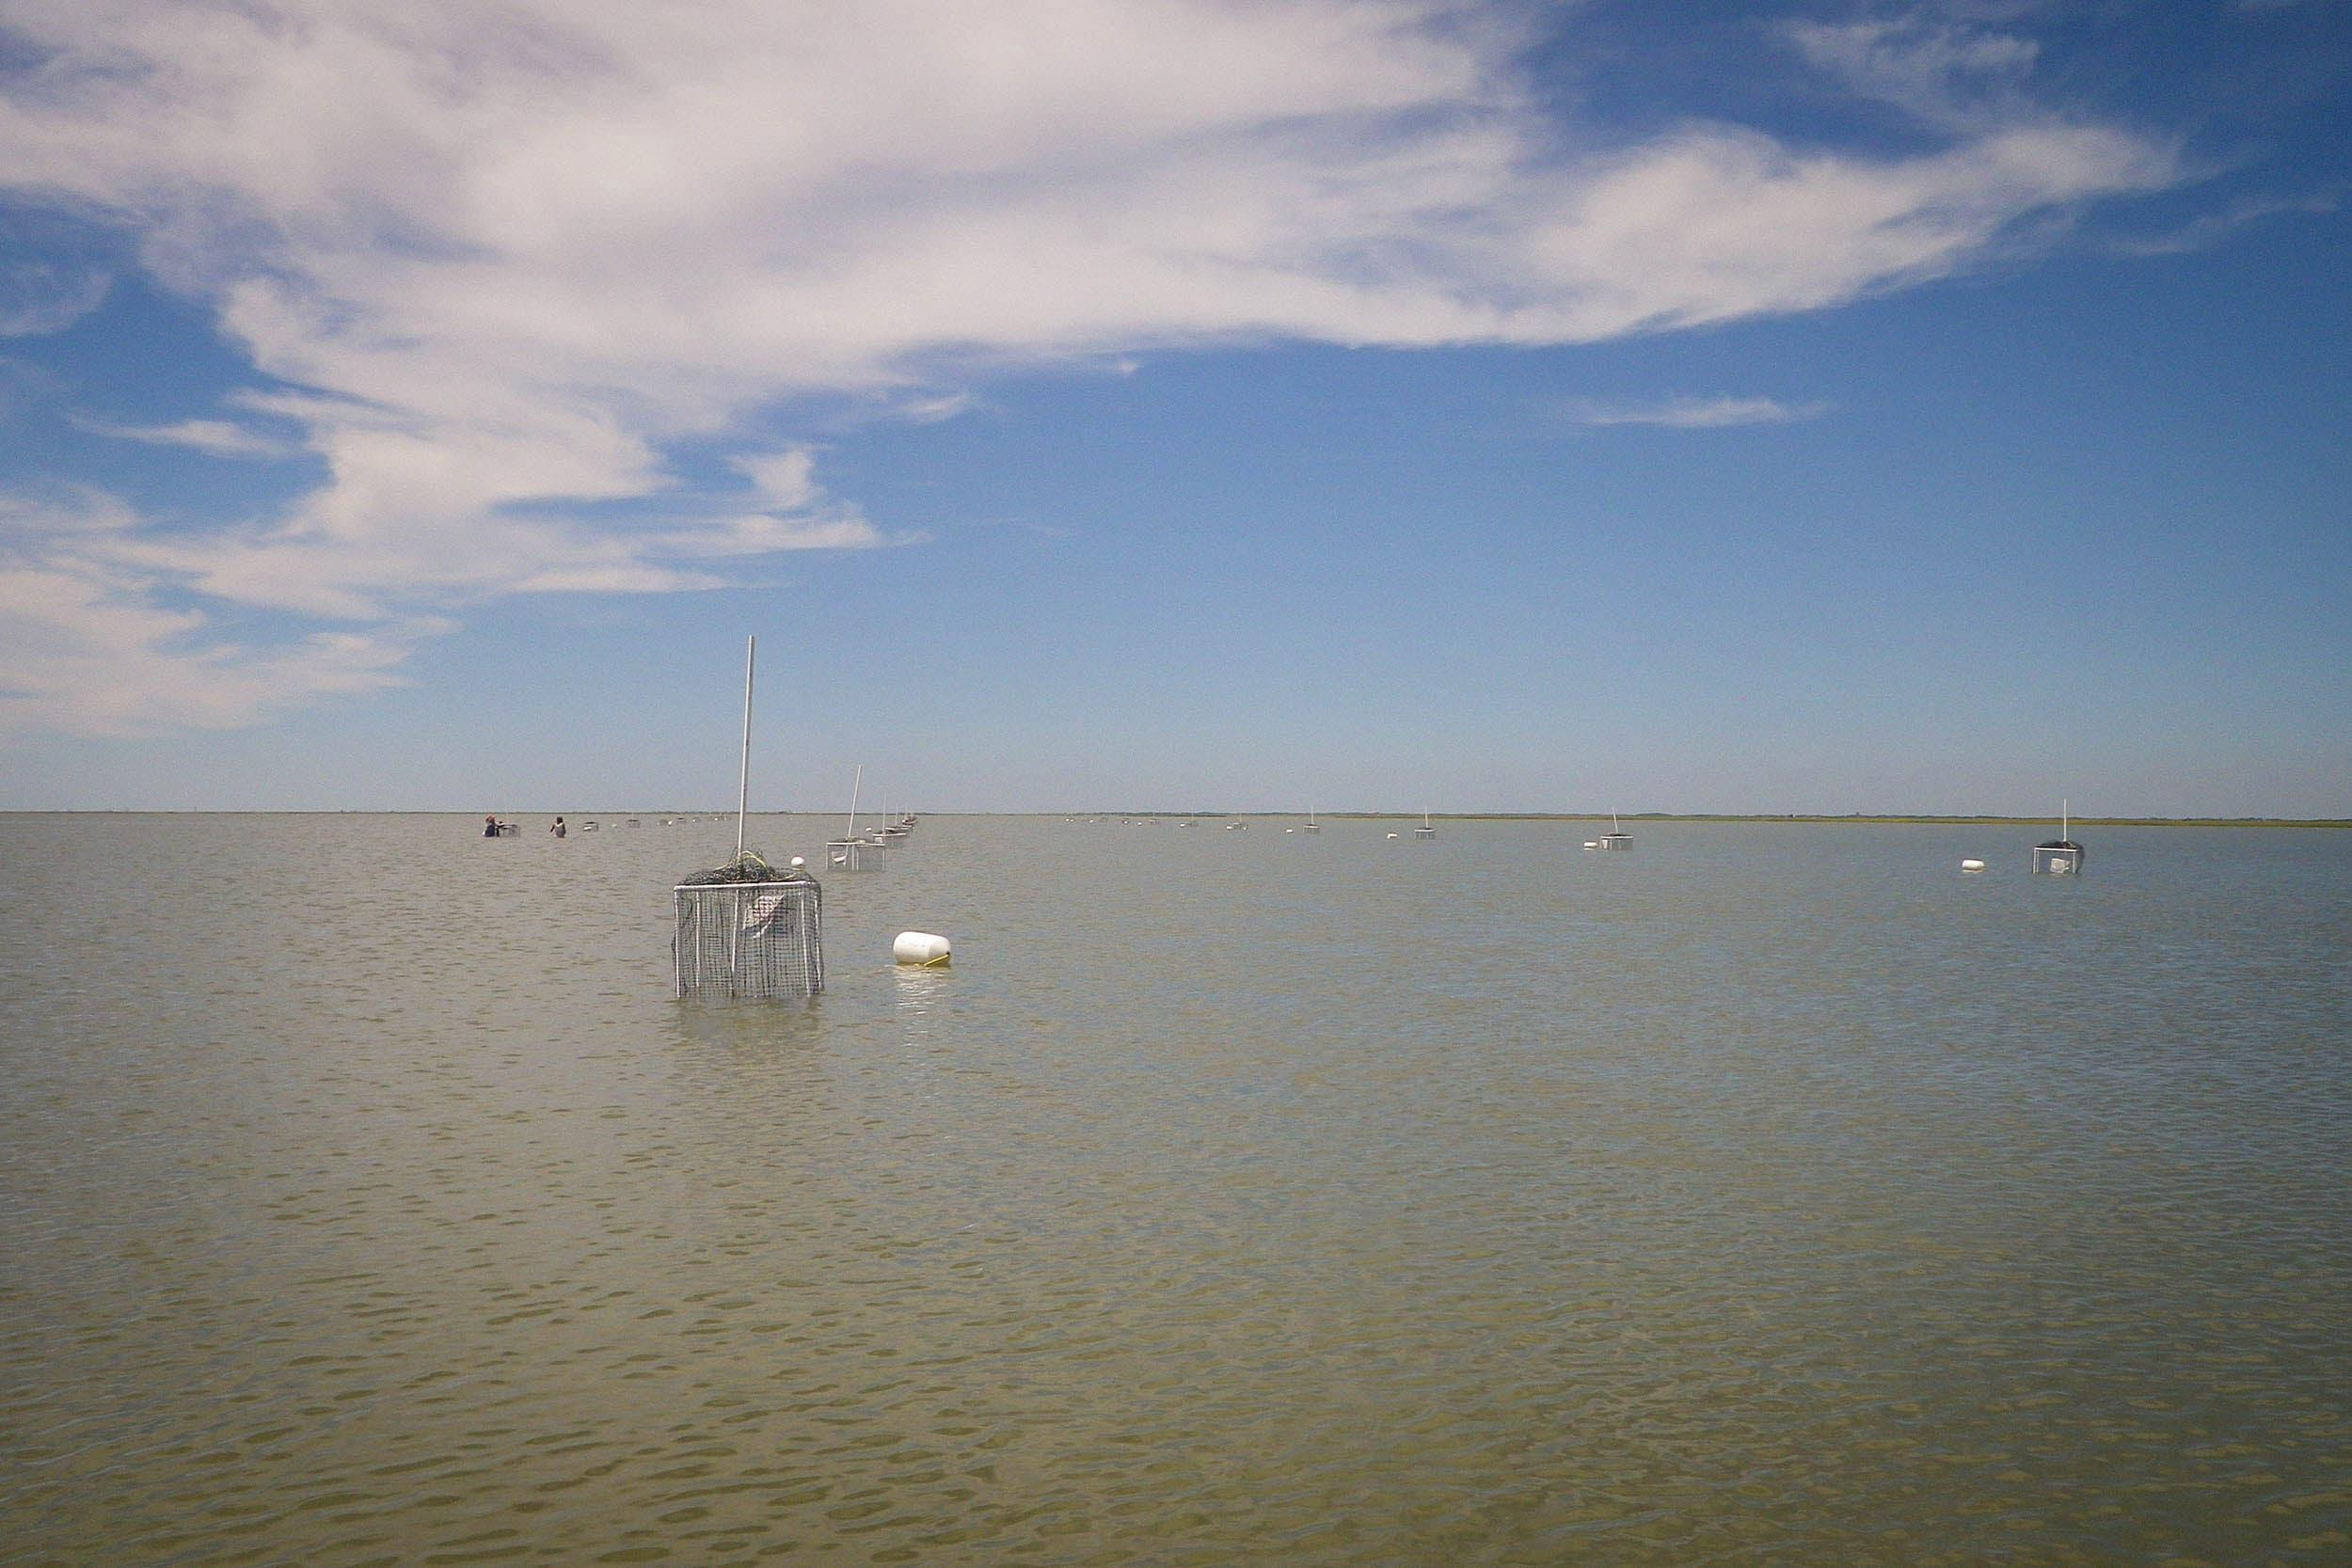 An array of modified crab traps deployed in open water